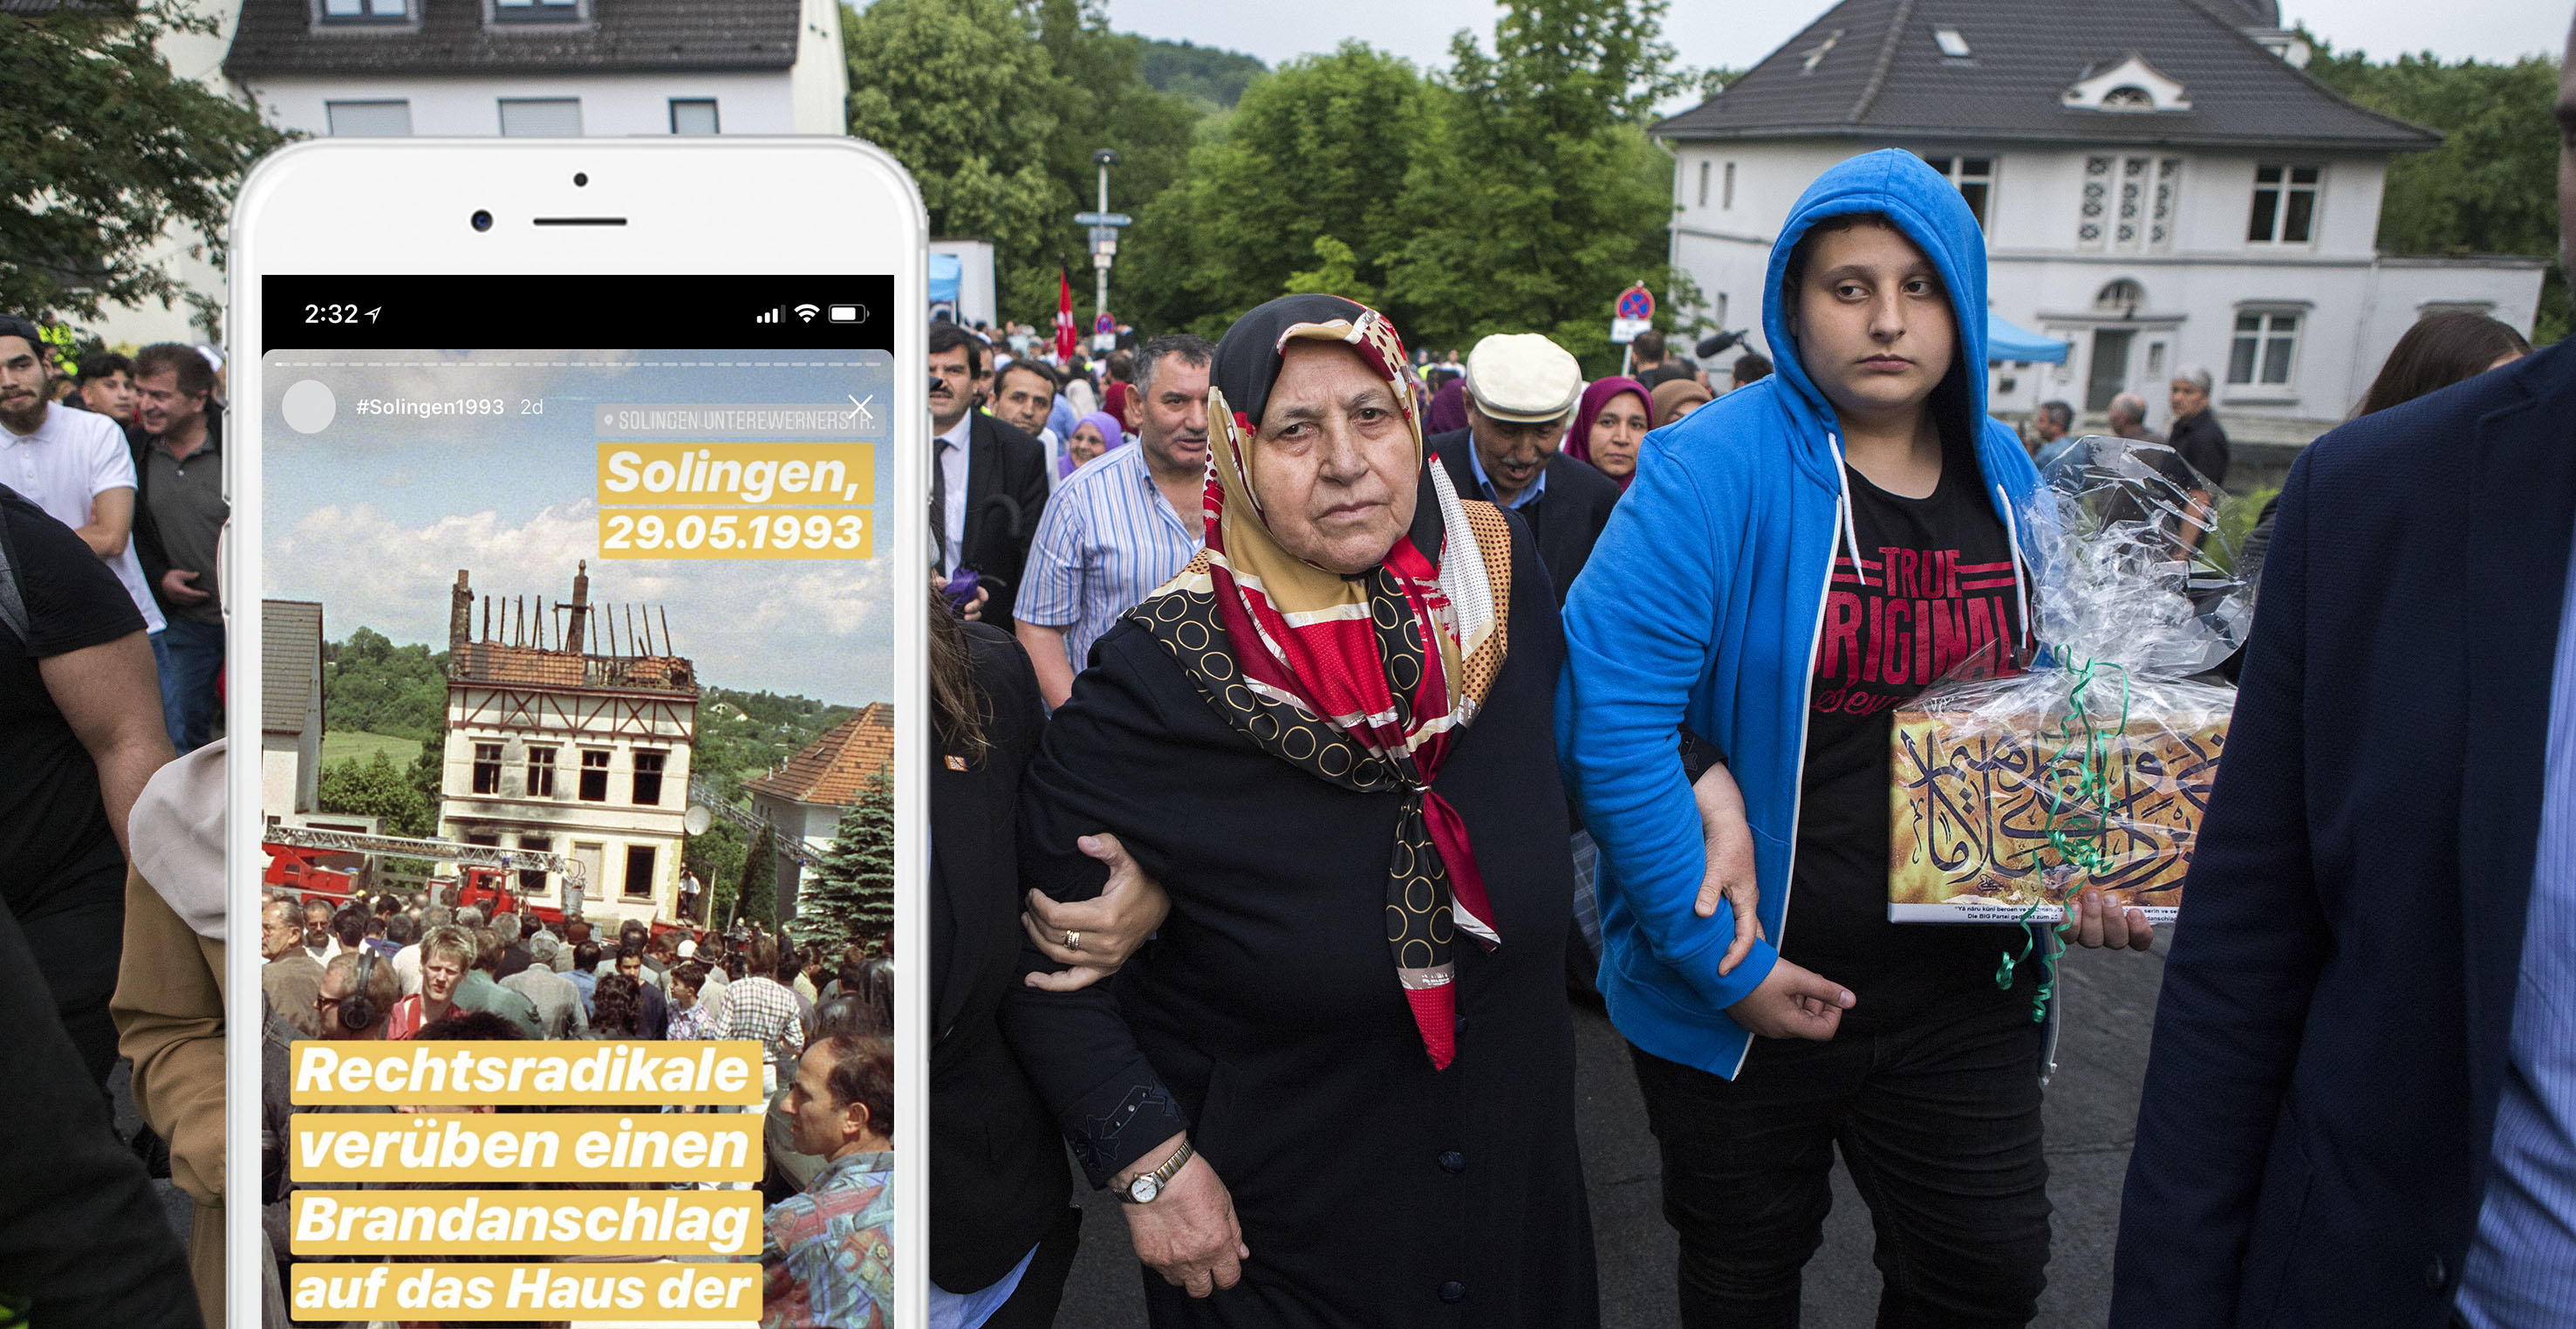 25 Jahre nach Brandanschlag in Solingen: Reportage mit Instagram Stories in Solingen, Foto: Mathias Schumacher